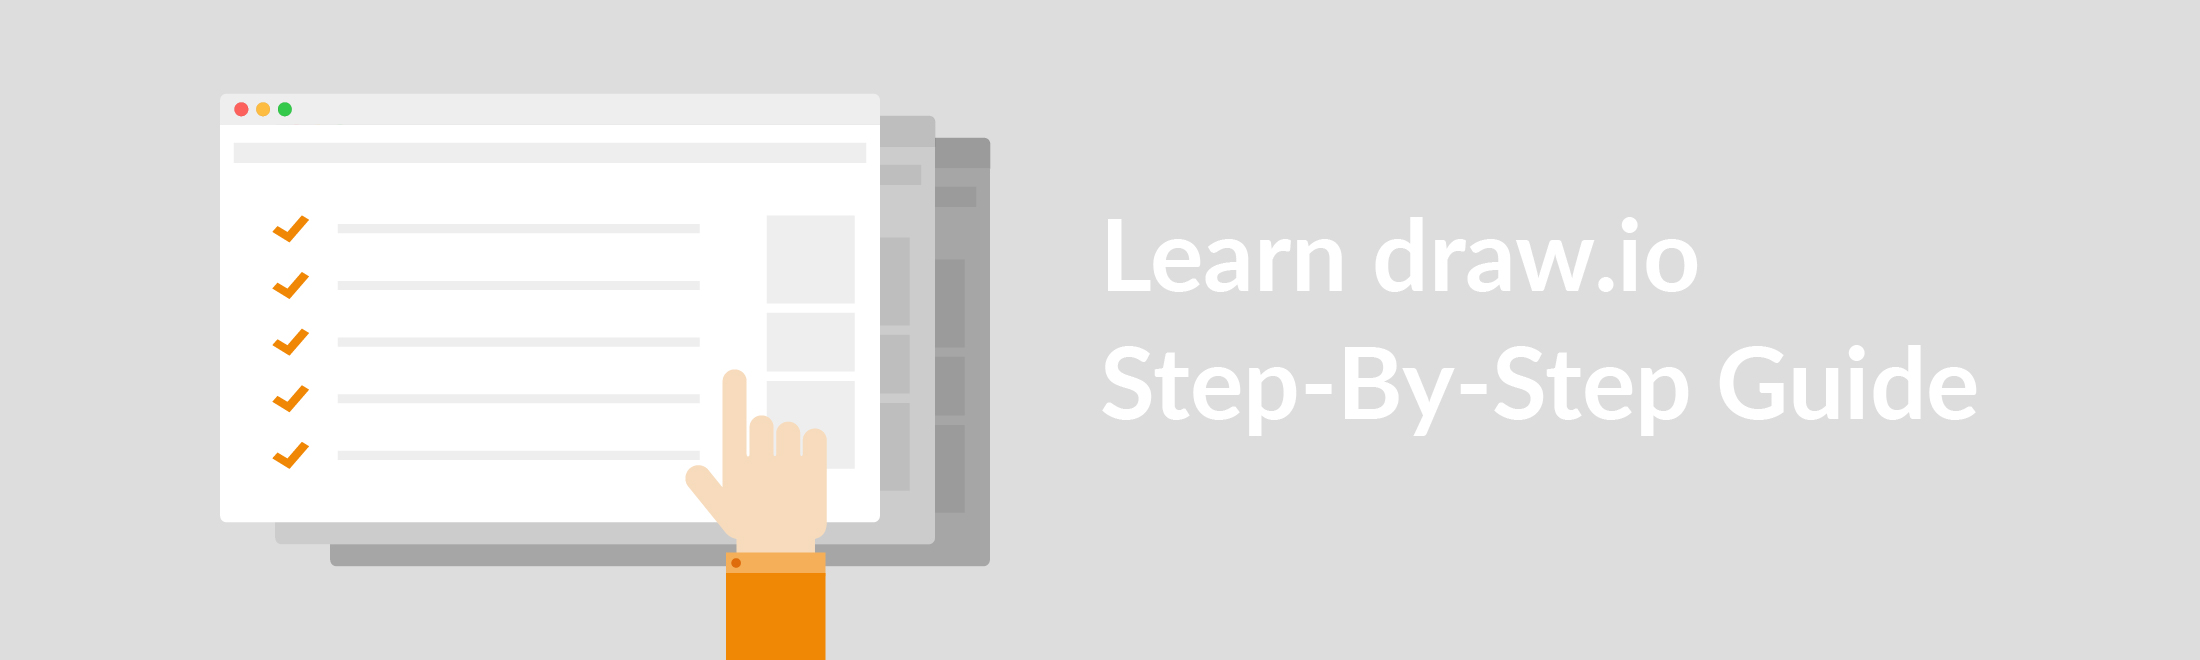 Hands-on training with the draw.io Step-By-Step-Guide